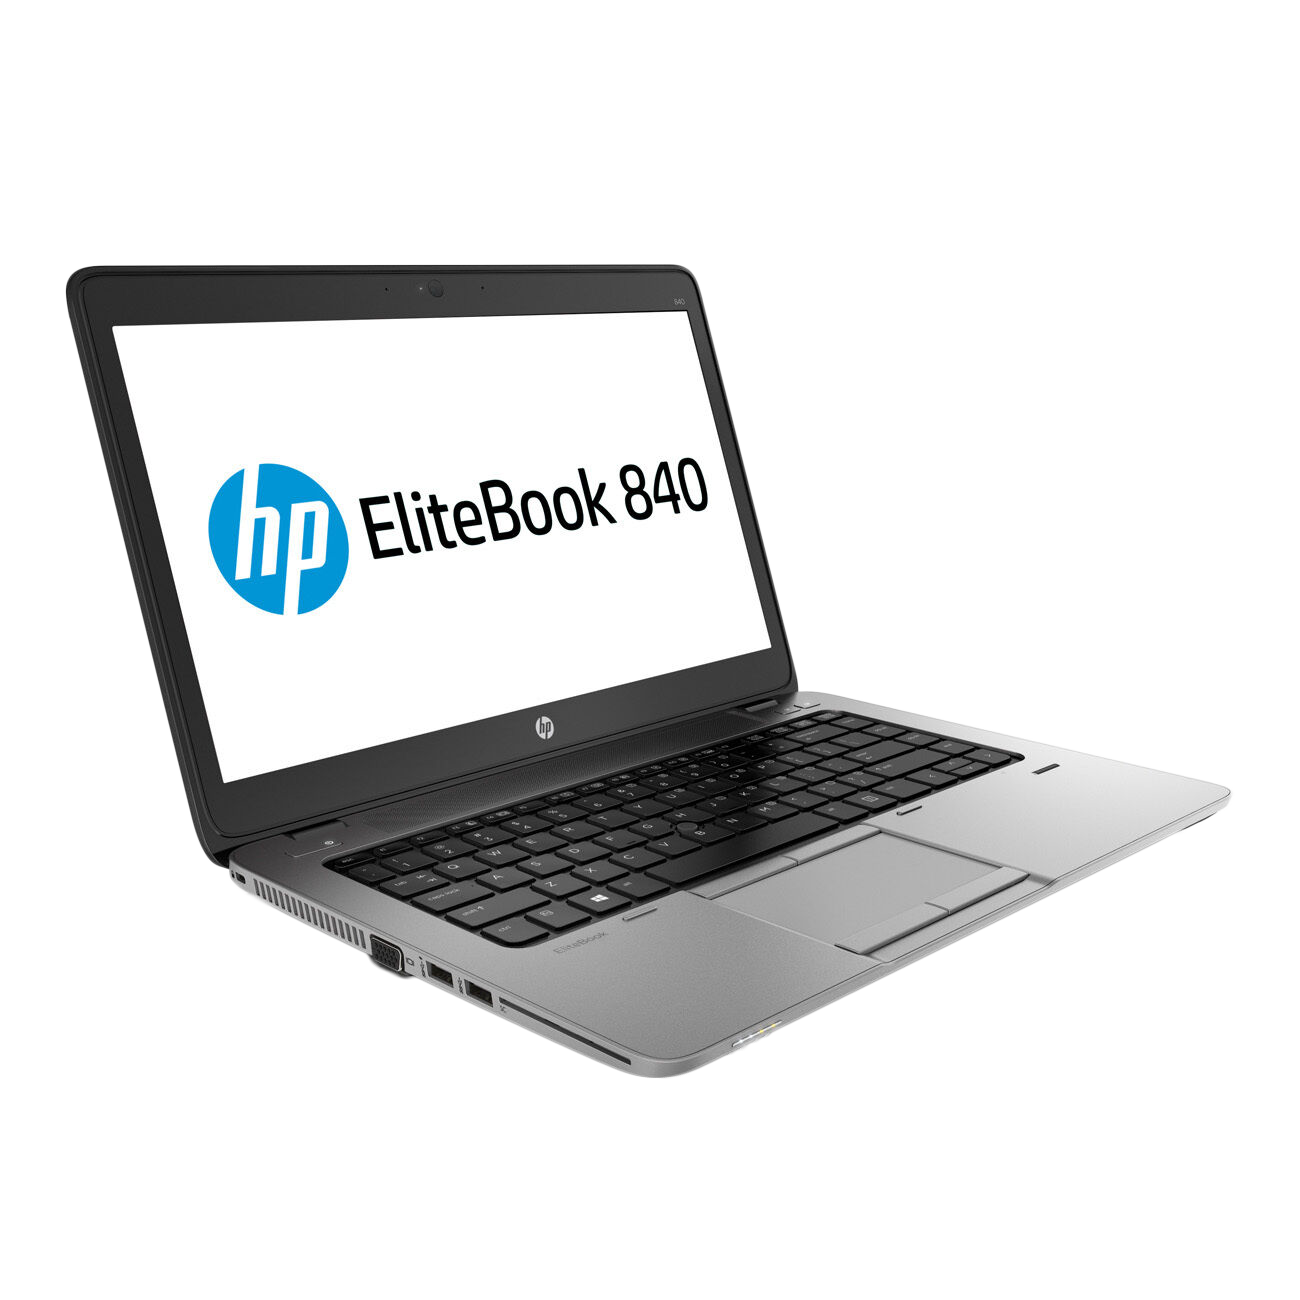 HP EliteBook 840 G1 Ultrabook Laptop i7-4600U 2.10GHz 4GB RAM 250GB HDD (Customisable)